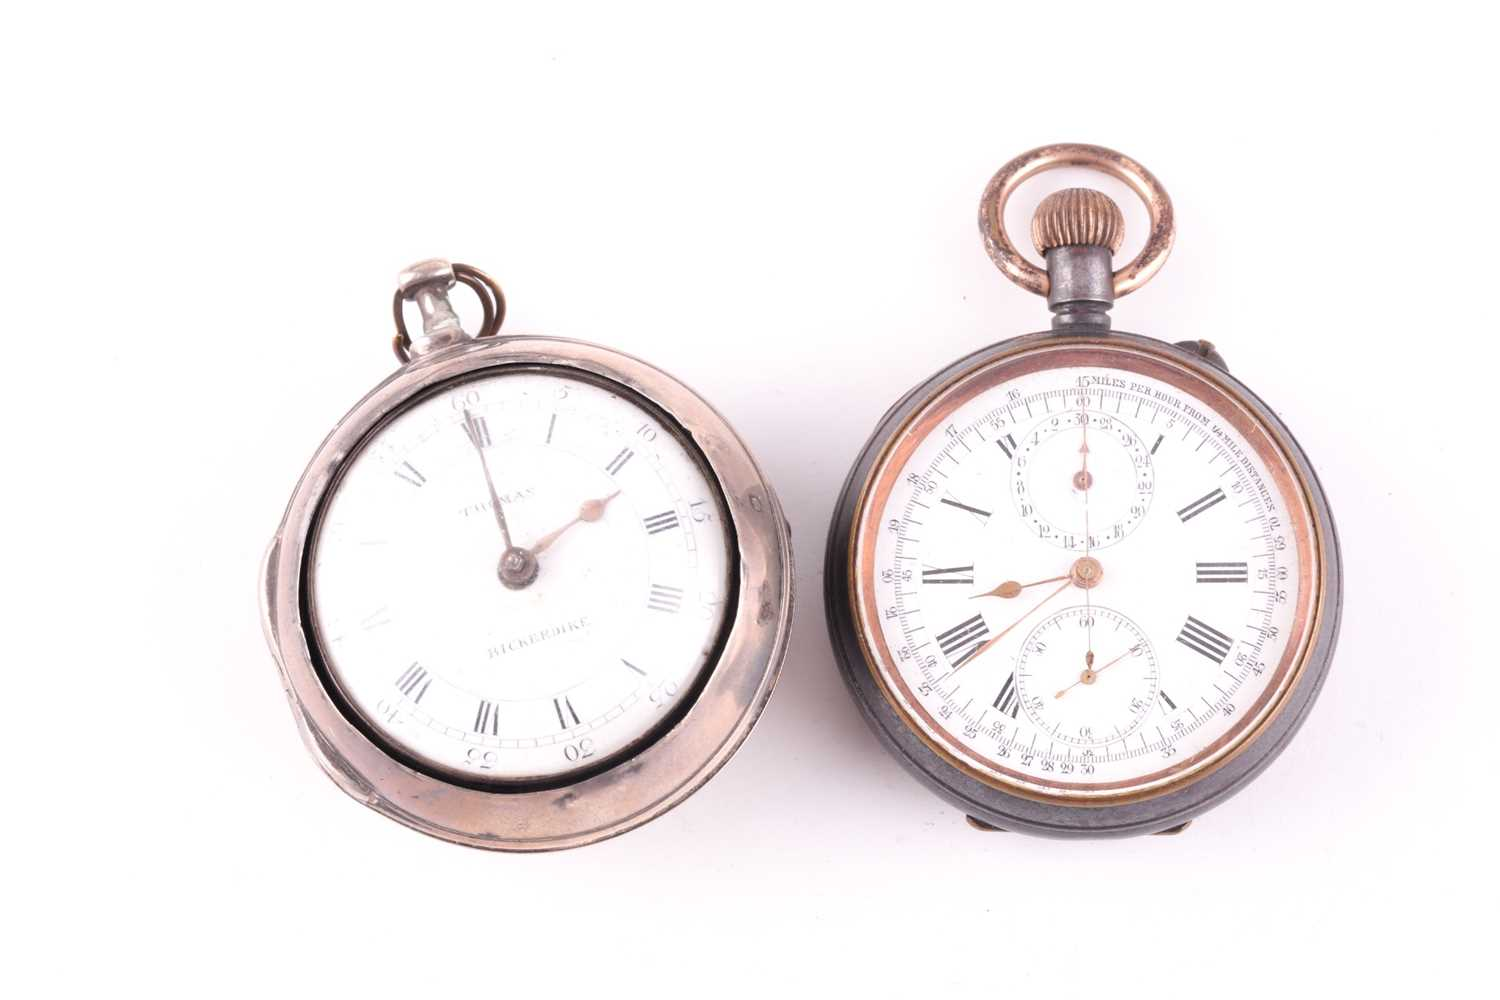 A late 18th century silver pair cased watch, white enamel dial with Roman numerals, signed Thomas, - Image 2 of 3